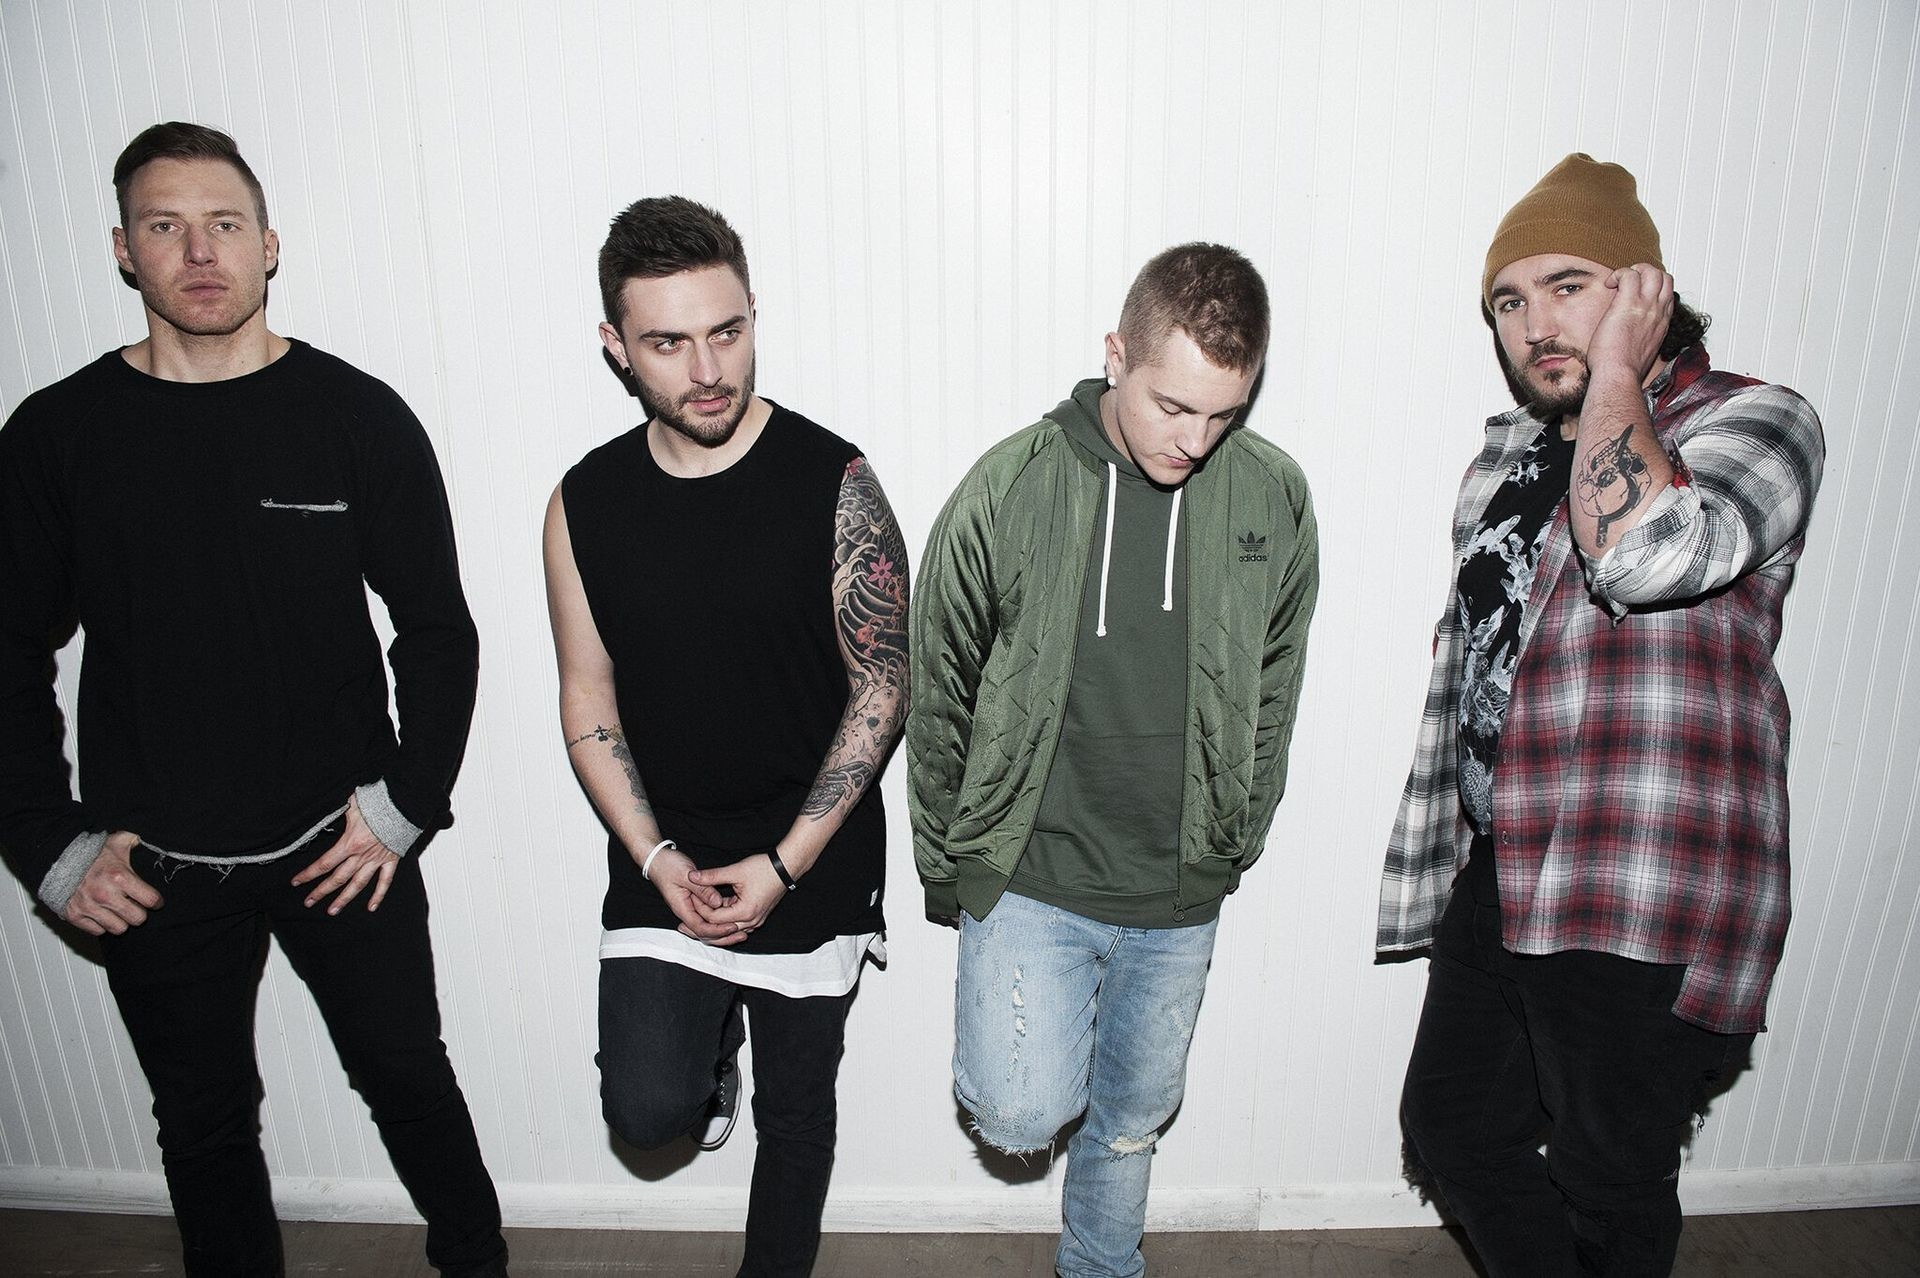 I Prevail Have Announced Their New Album, And Have Set A Challenge To Get Their First Single